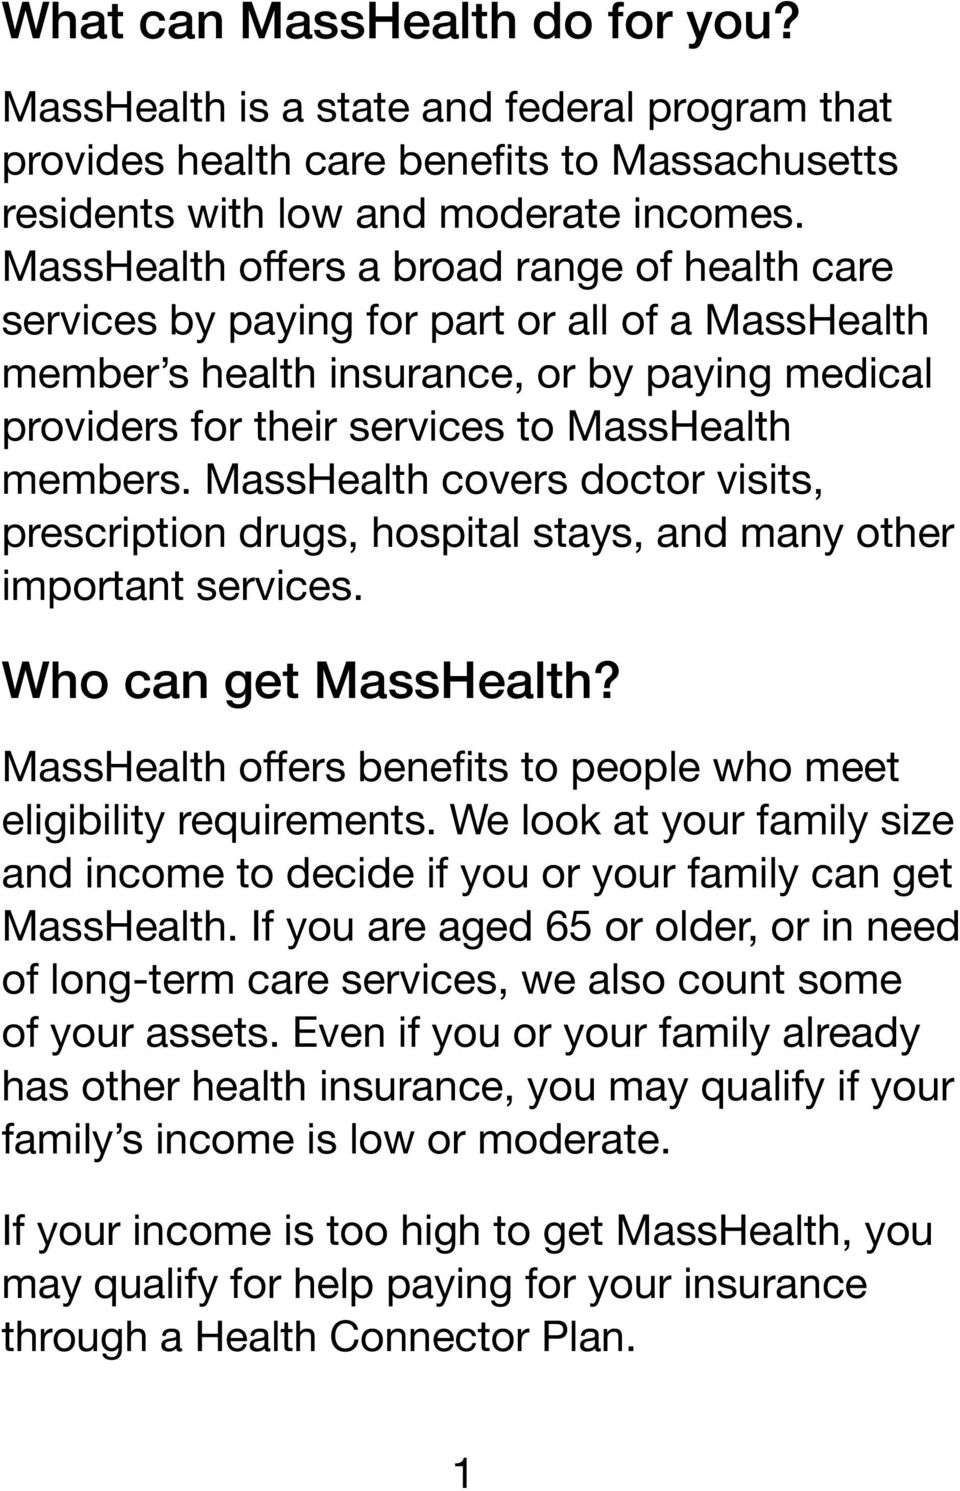 MassHealth covers doctor visits, prescription drugs, hospital stays, and many other important services. Who can get MassHealth? MassHealth offers benefits to people who meet eligibility requirements.